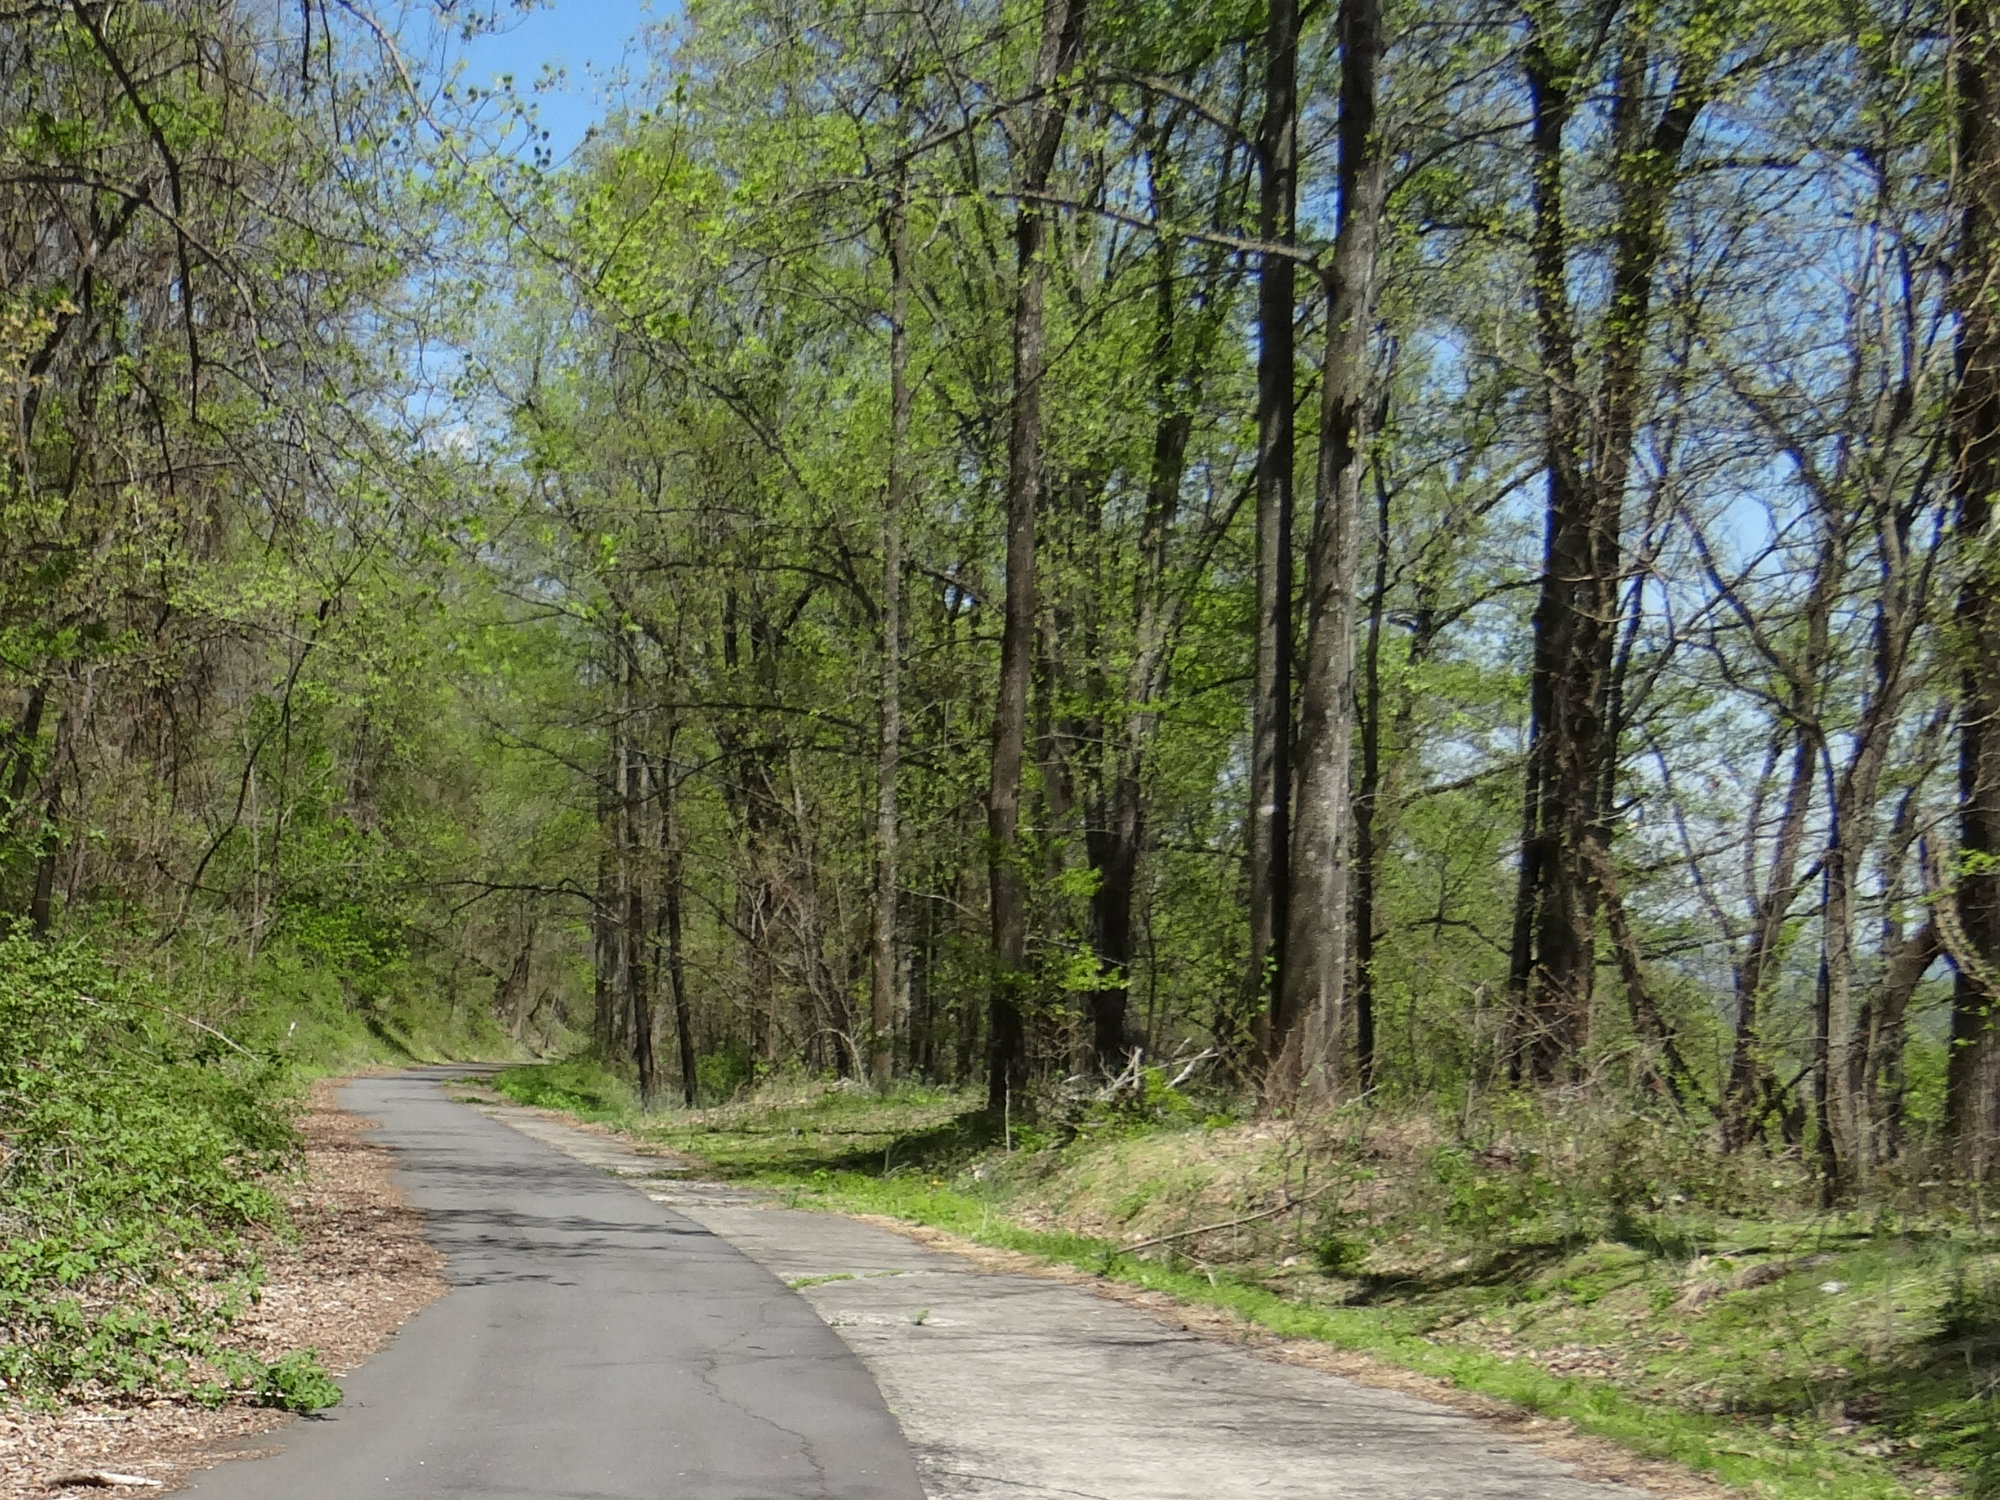 Paved walking trail through forested land in the springtime